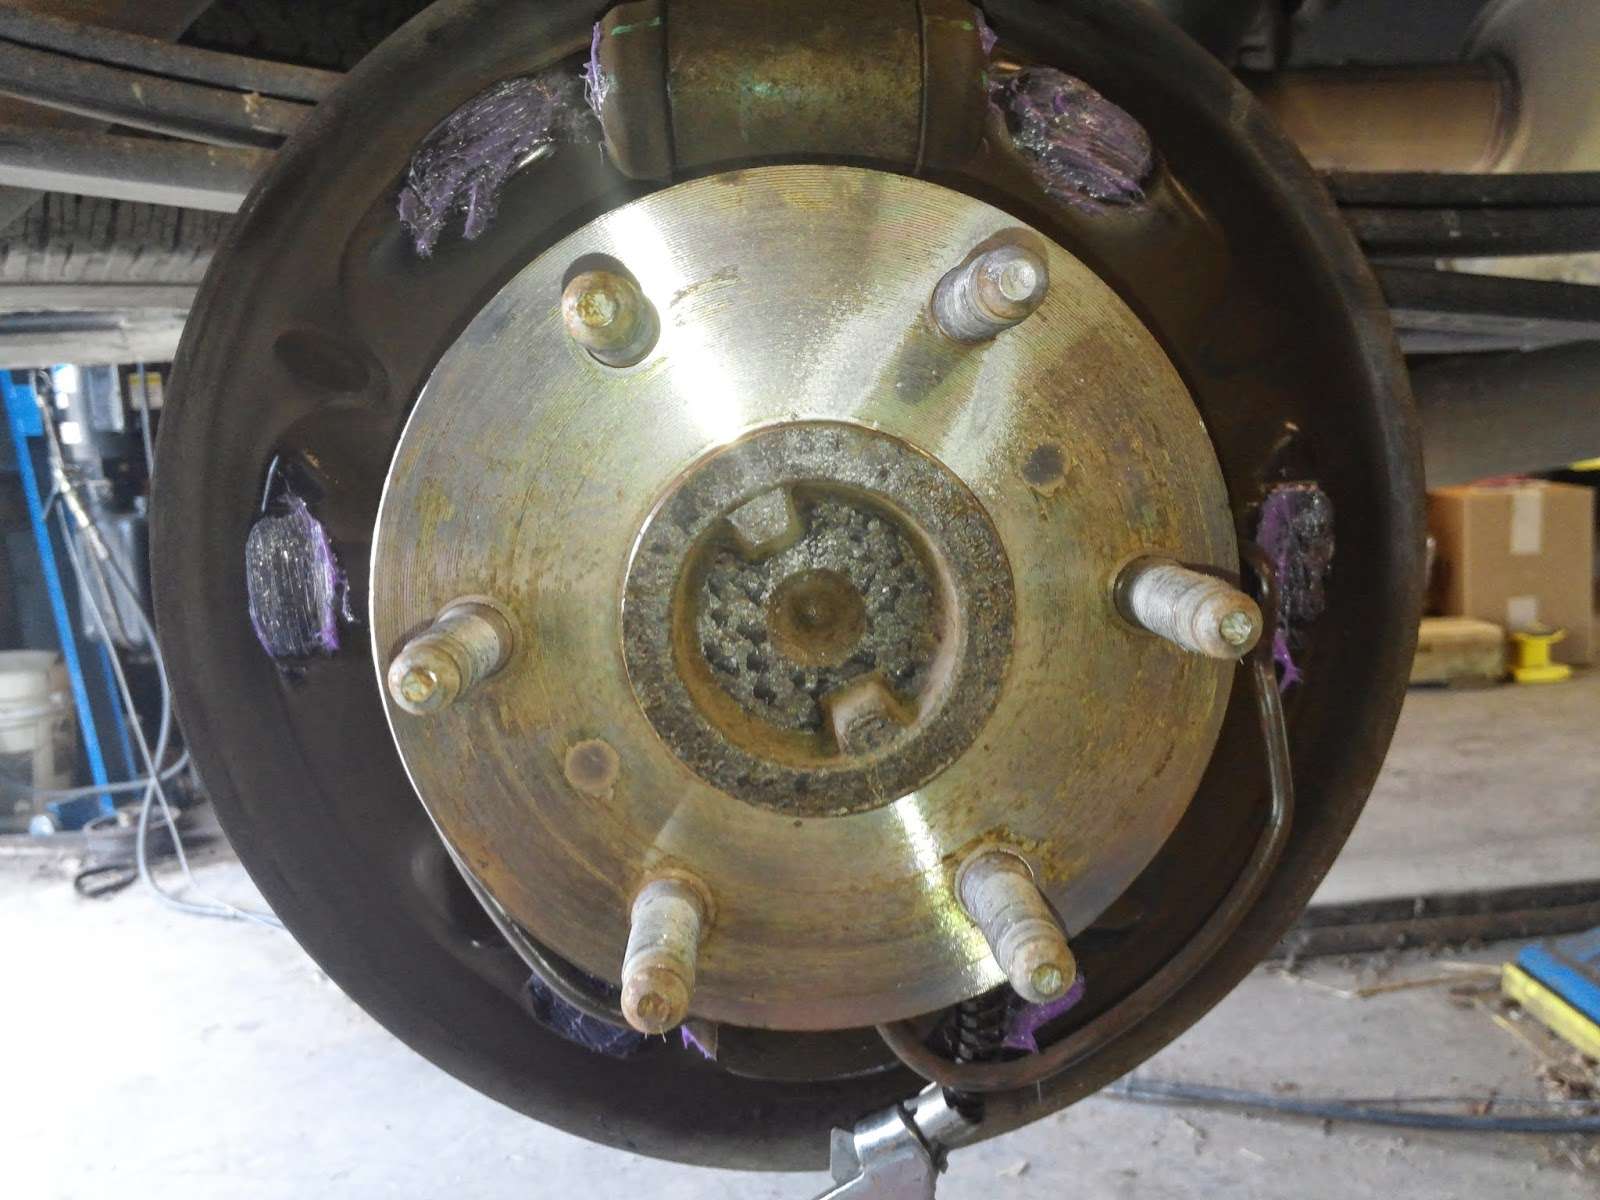 I always grease the contact points to make for a nice smooth and quiet braking experience i use caliper grease on the rear brakes and front as well